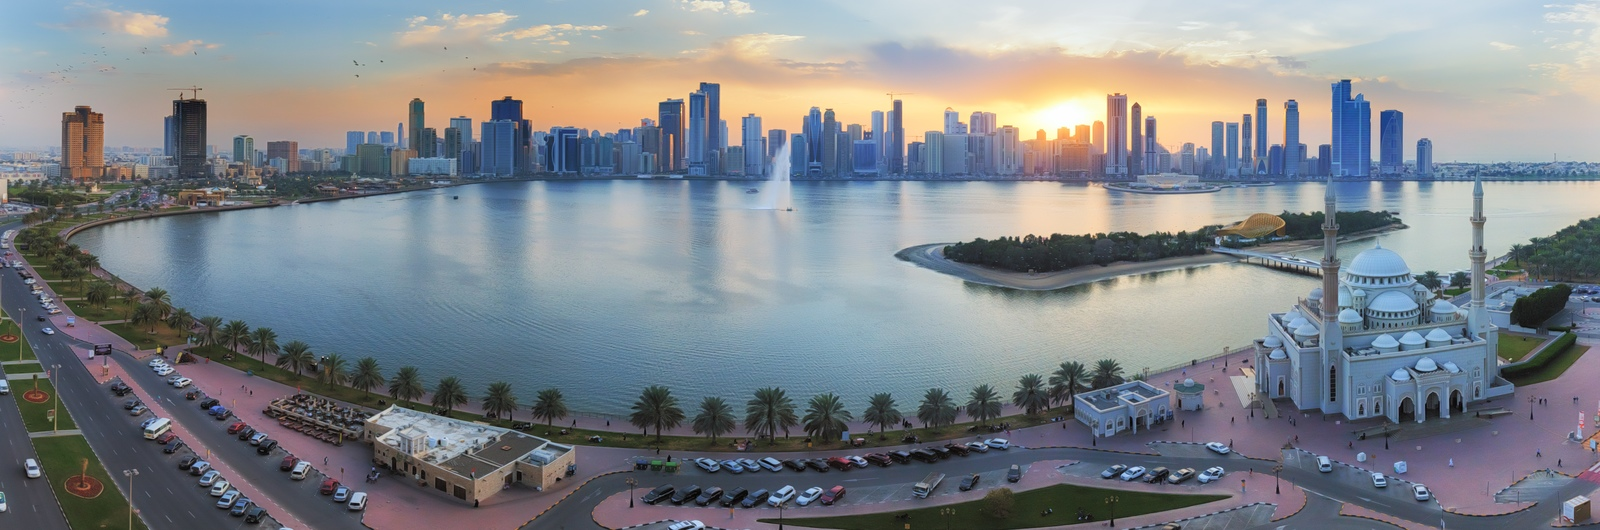 sharjah city header